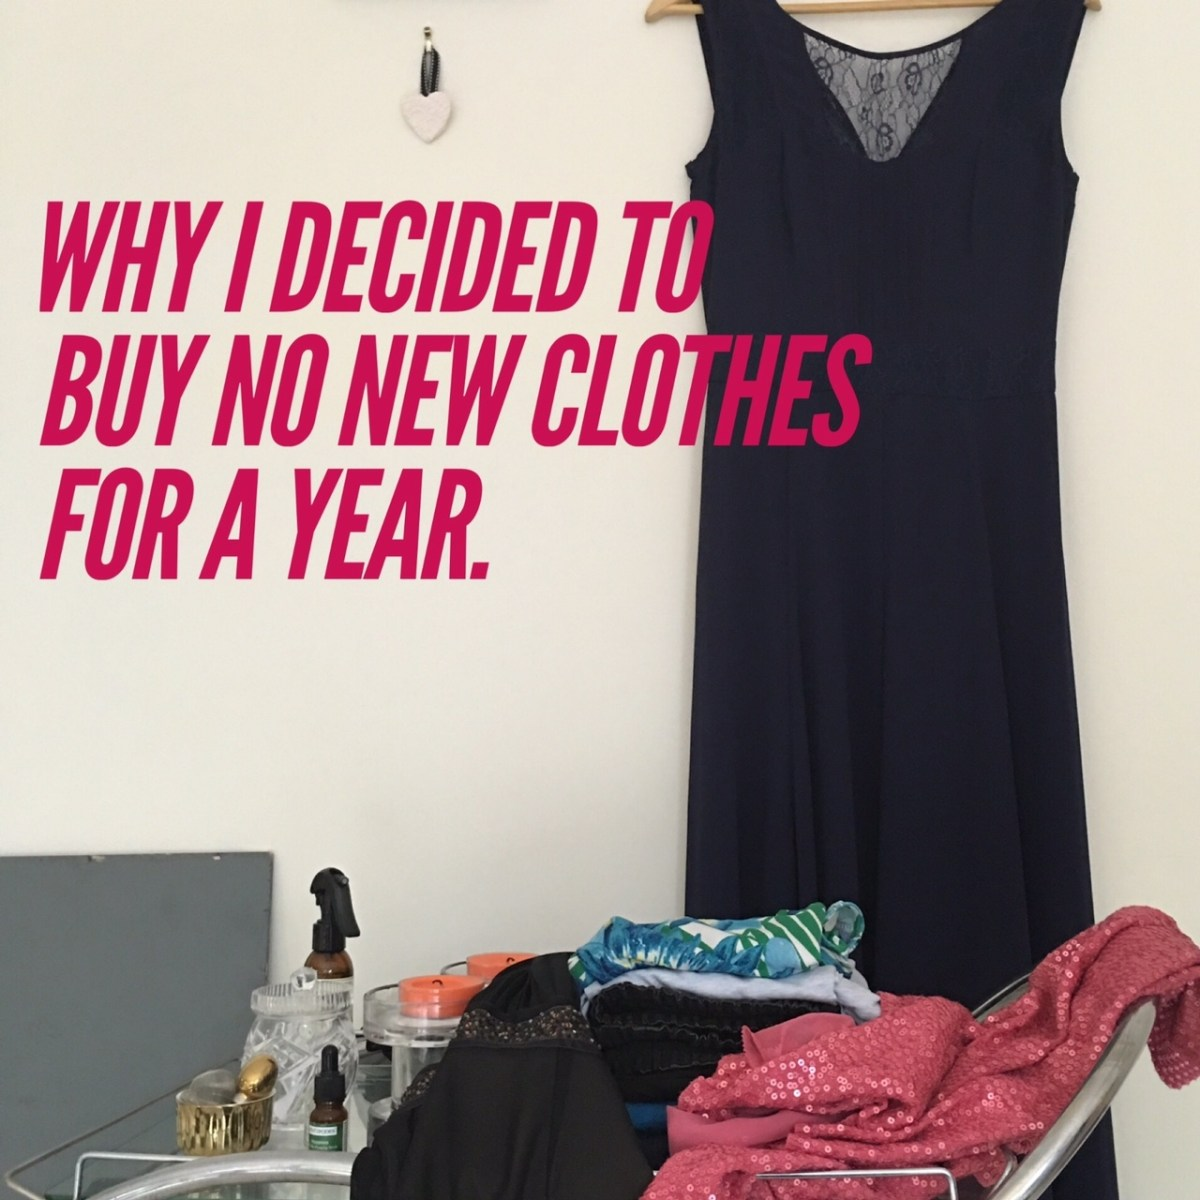 No new clothes for a year.